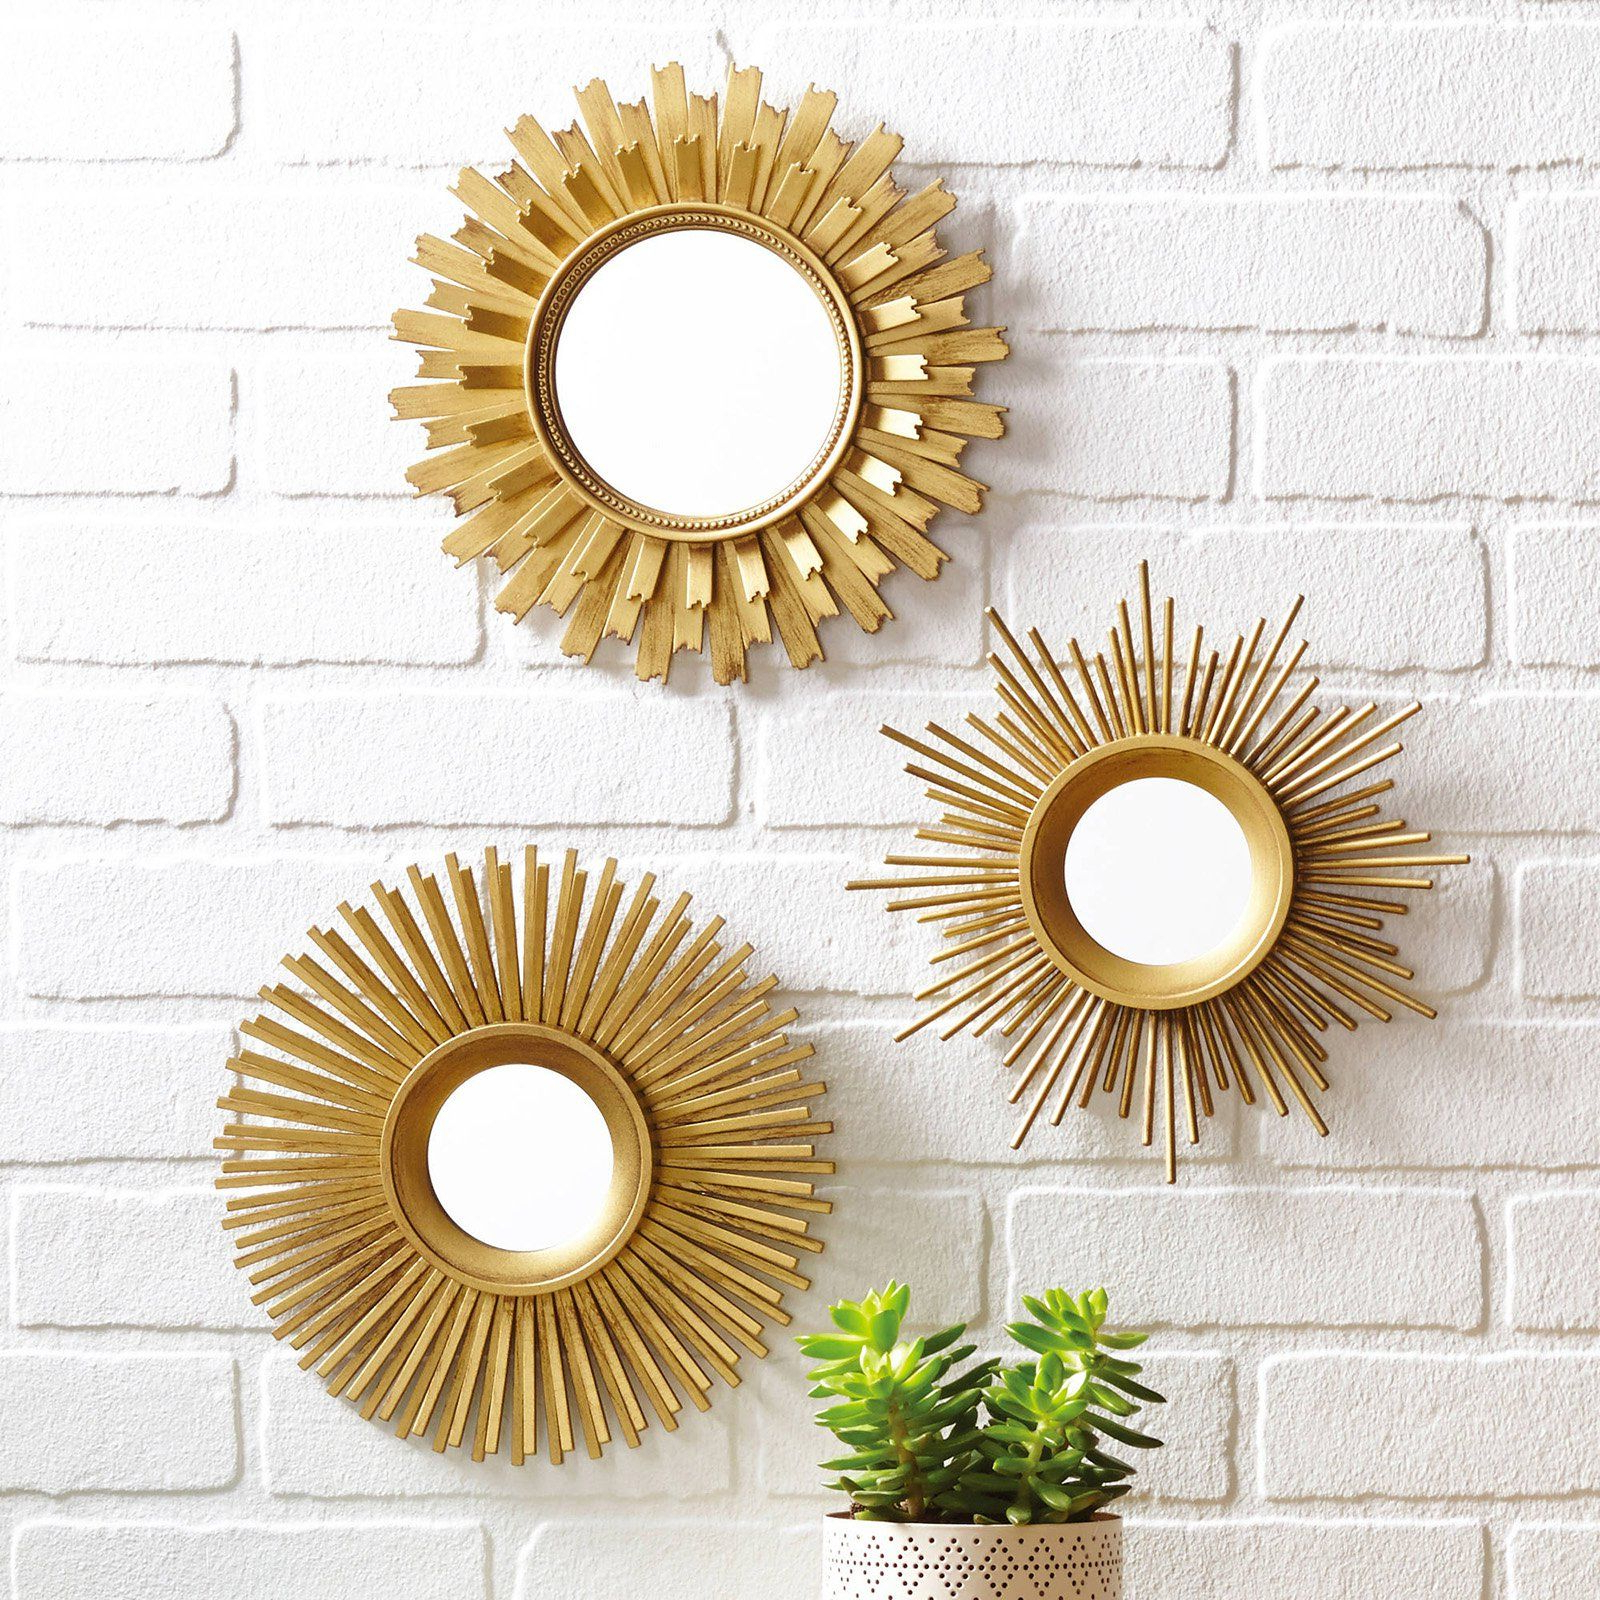 From Within 2019 2 Piece Starburst Wall Decor Sets (View 11 of 20)